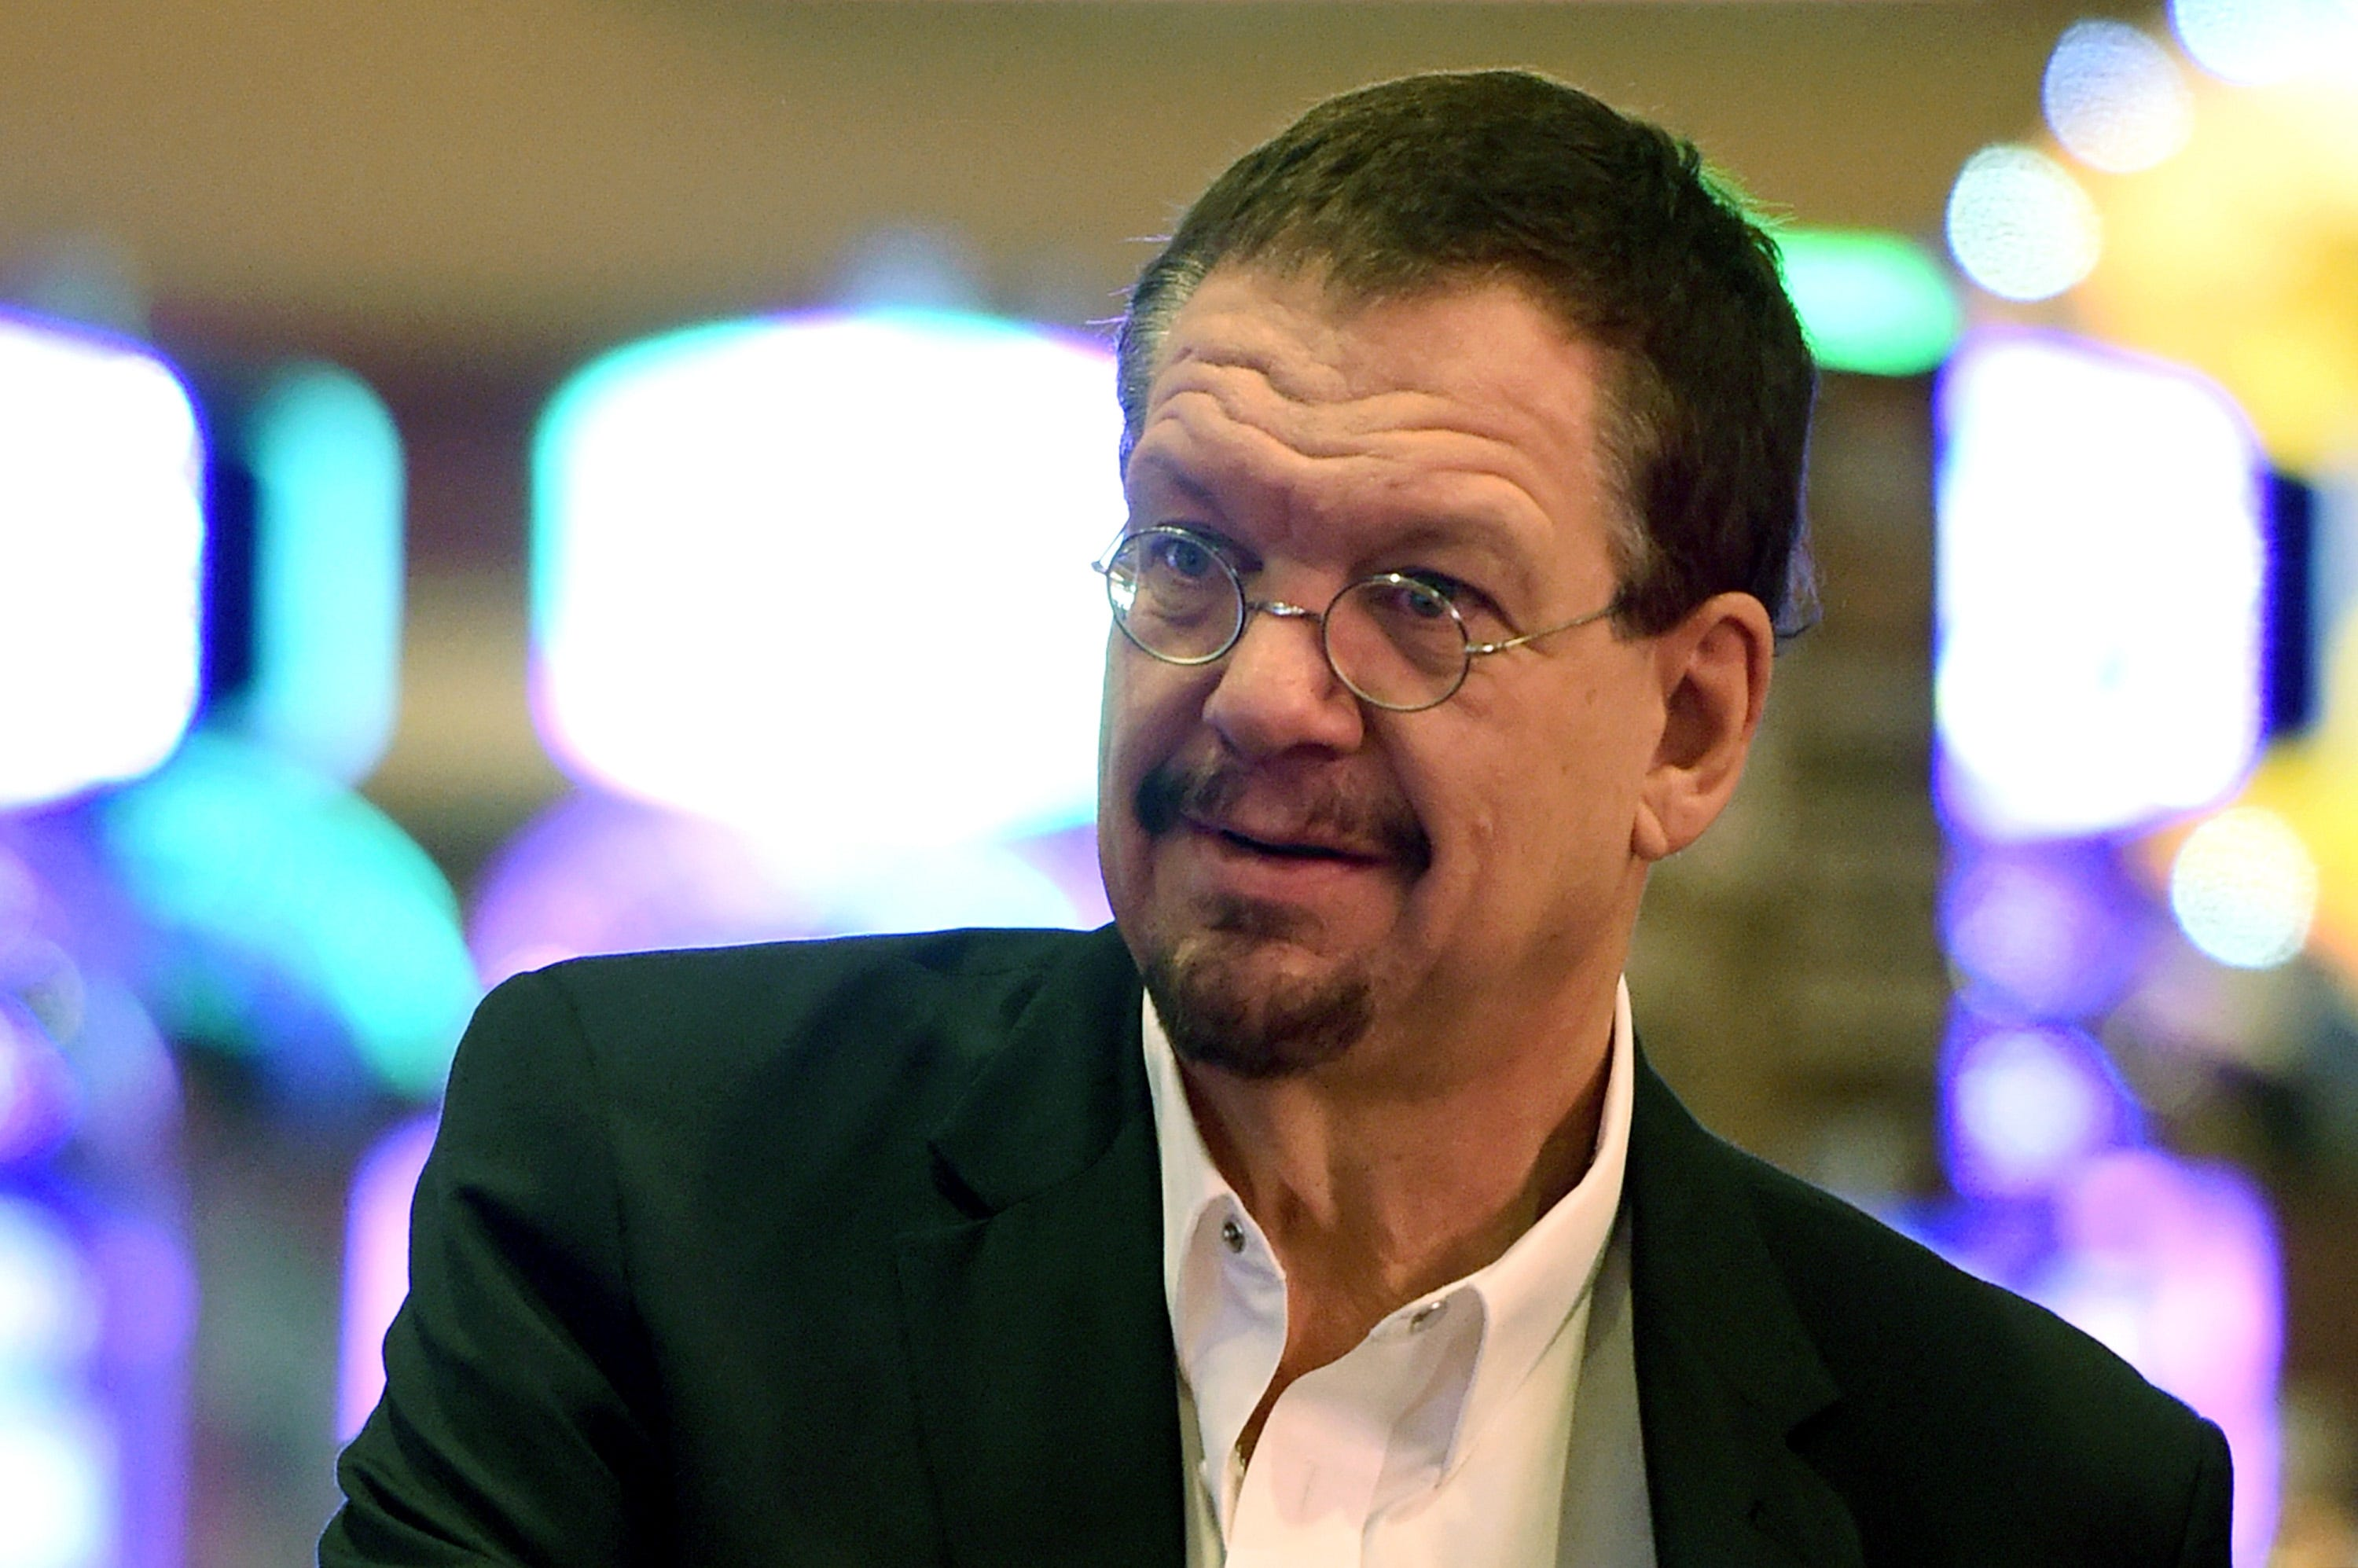 Penn Jillette says he knows Trump tapes exist, because 'I was in the room' | Burlington Free Press